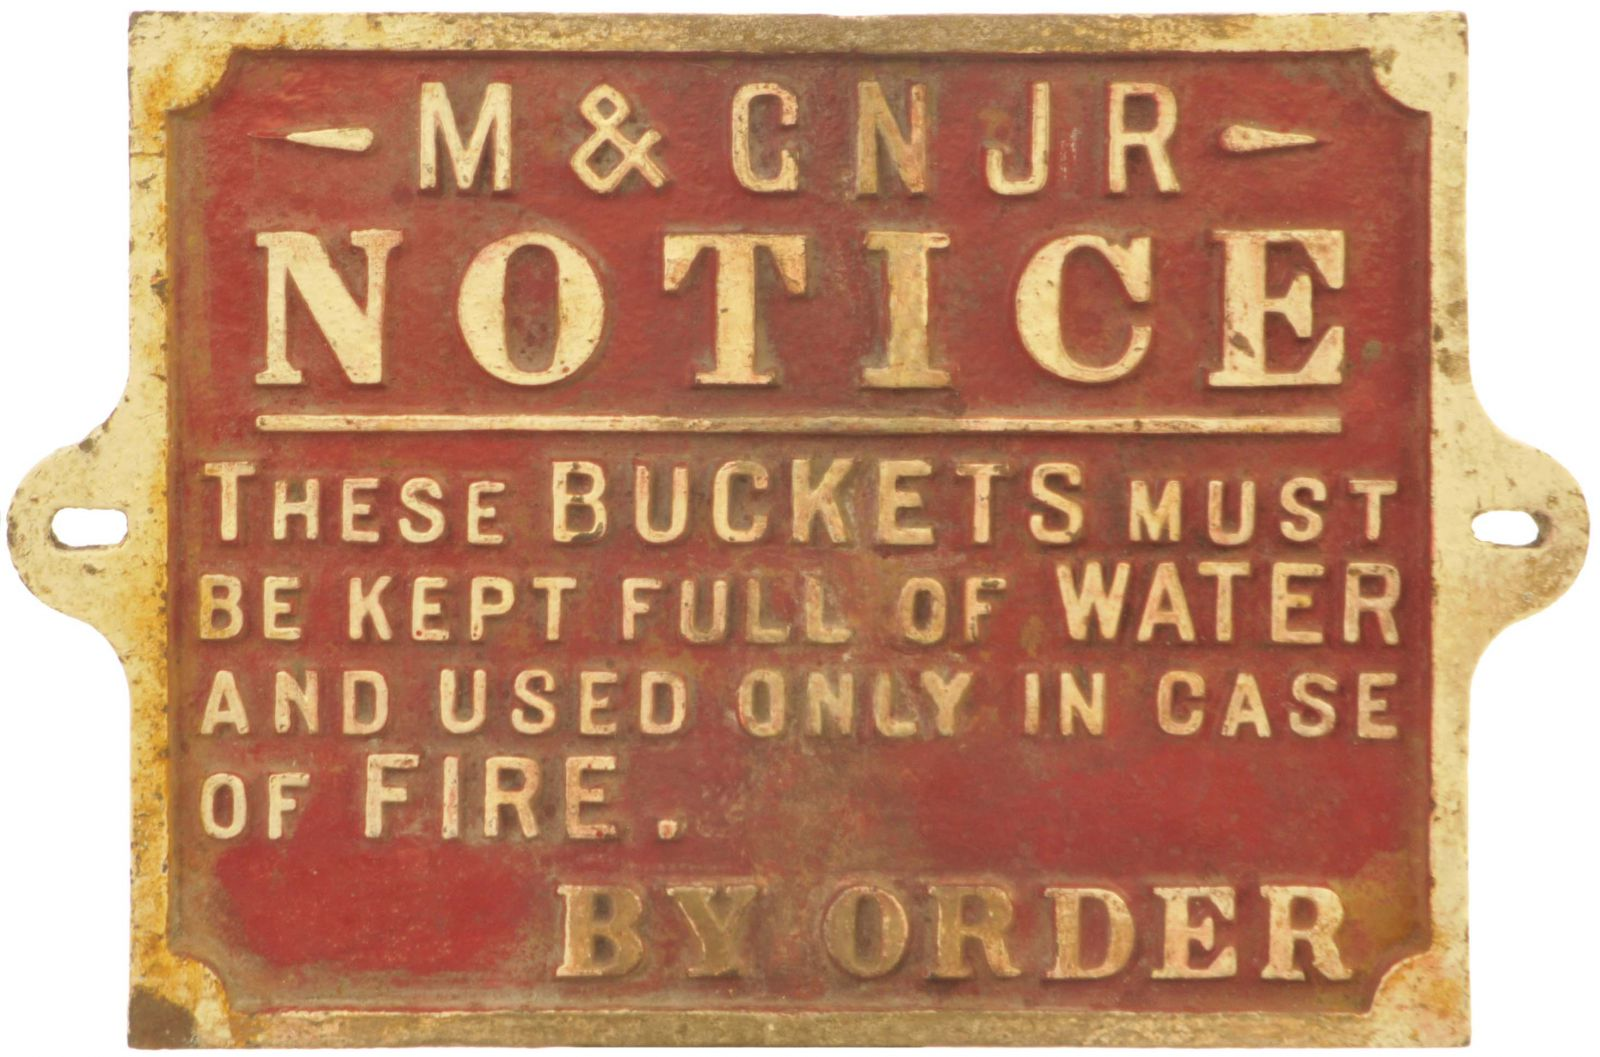 Lot 55 - Cast Iron Railway Signs, M&GN Fire Buckets: A Midland & Great Northern Joint Railway fire buckets